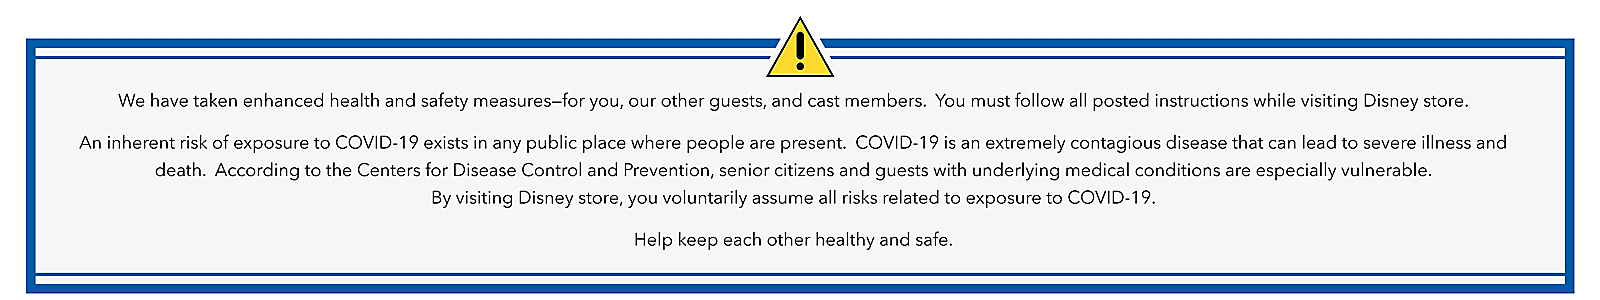 We have taken enhanced health and safety measures for you, our other guests, and cast members. You must follow all posted instructions while visiting Disney store. An inherit risk of exposure to COVID-19 exists in any public place where people are present. COVID-19 is an extremely contagious disease that can lead to severe illness and death. According to the Centers for Disease Control and Prevention, senior citizens and guests with underlying medical conditions are especially vulnerable. By visiting Disney store, you voluntarily assume all risks related to exposure to COVID-19. Help keep each other healthy and safe.